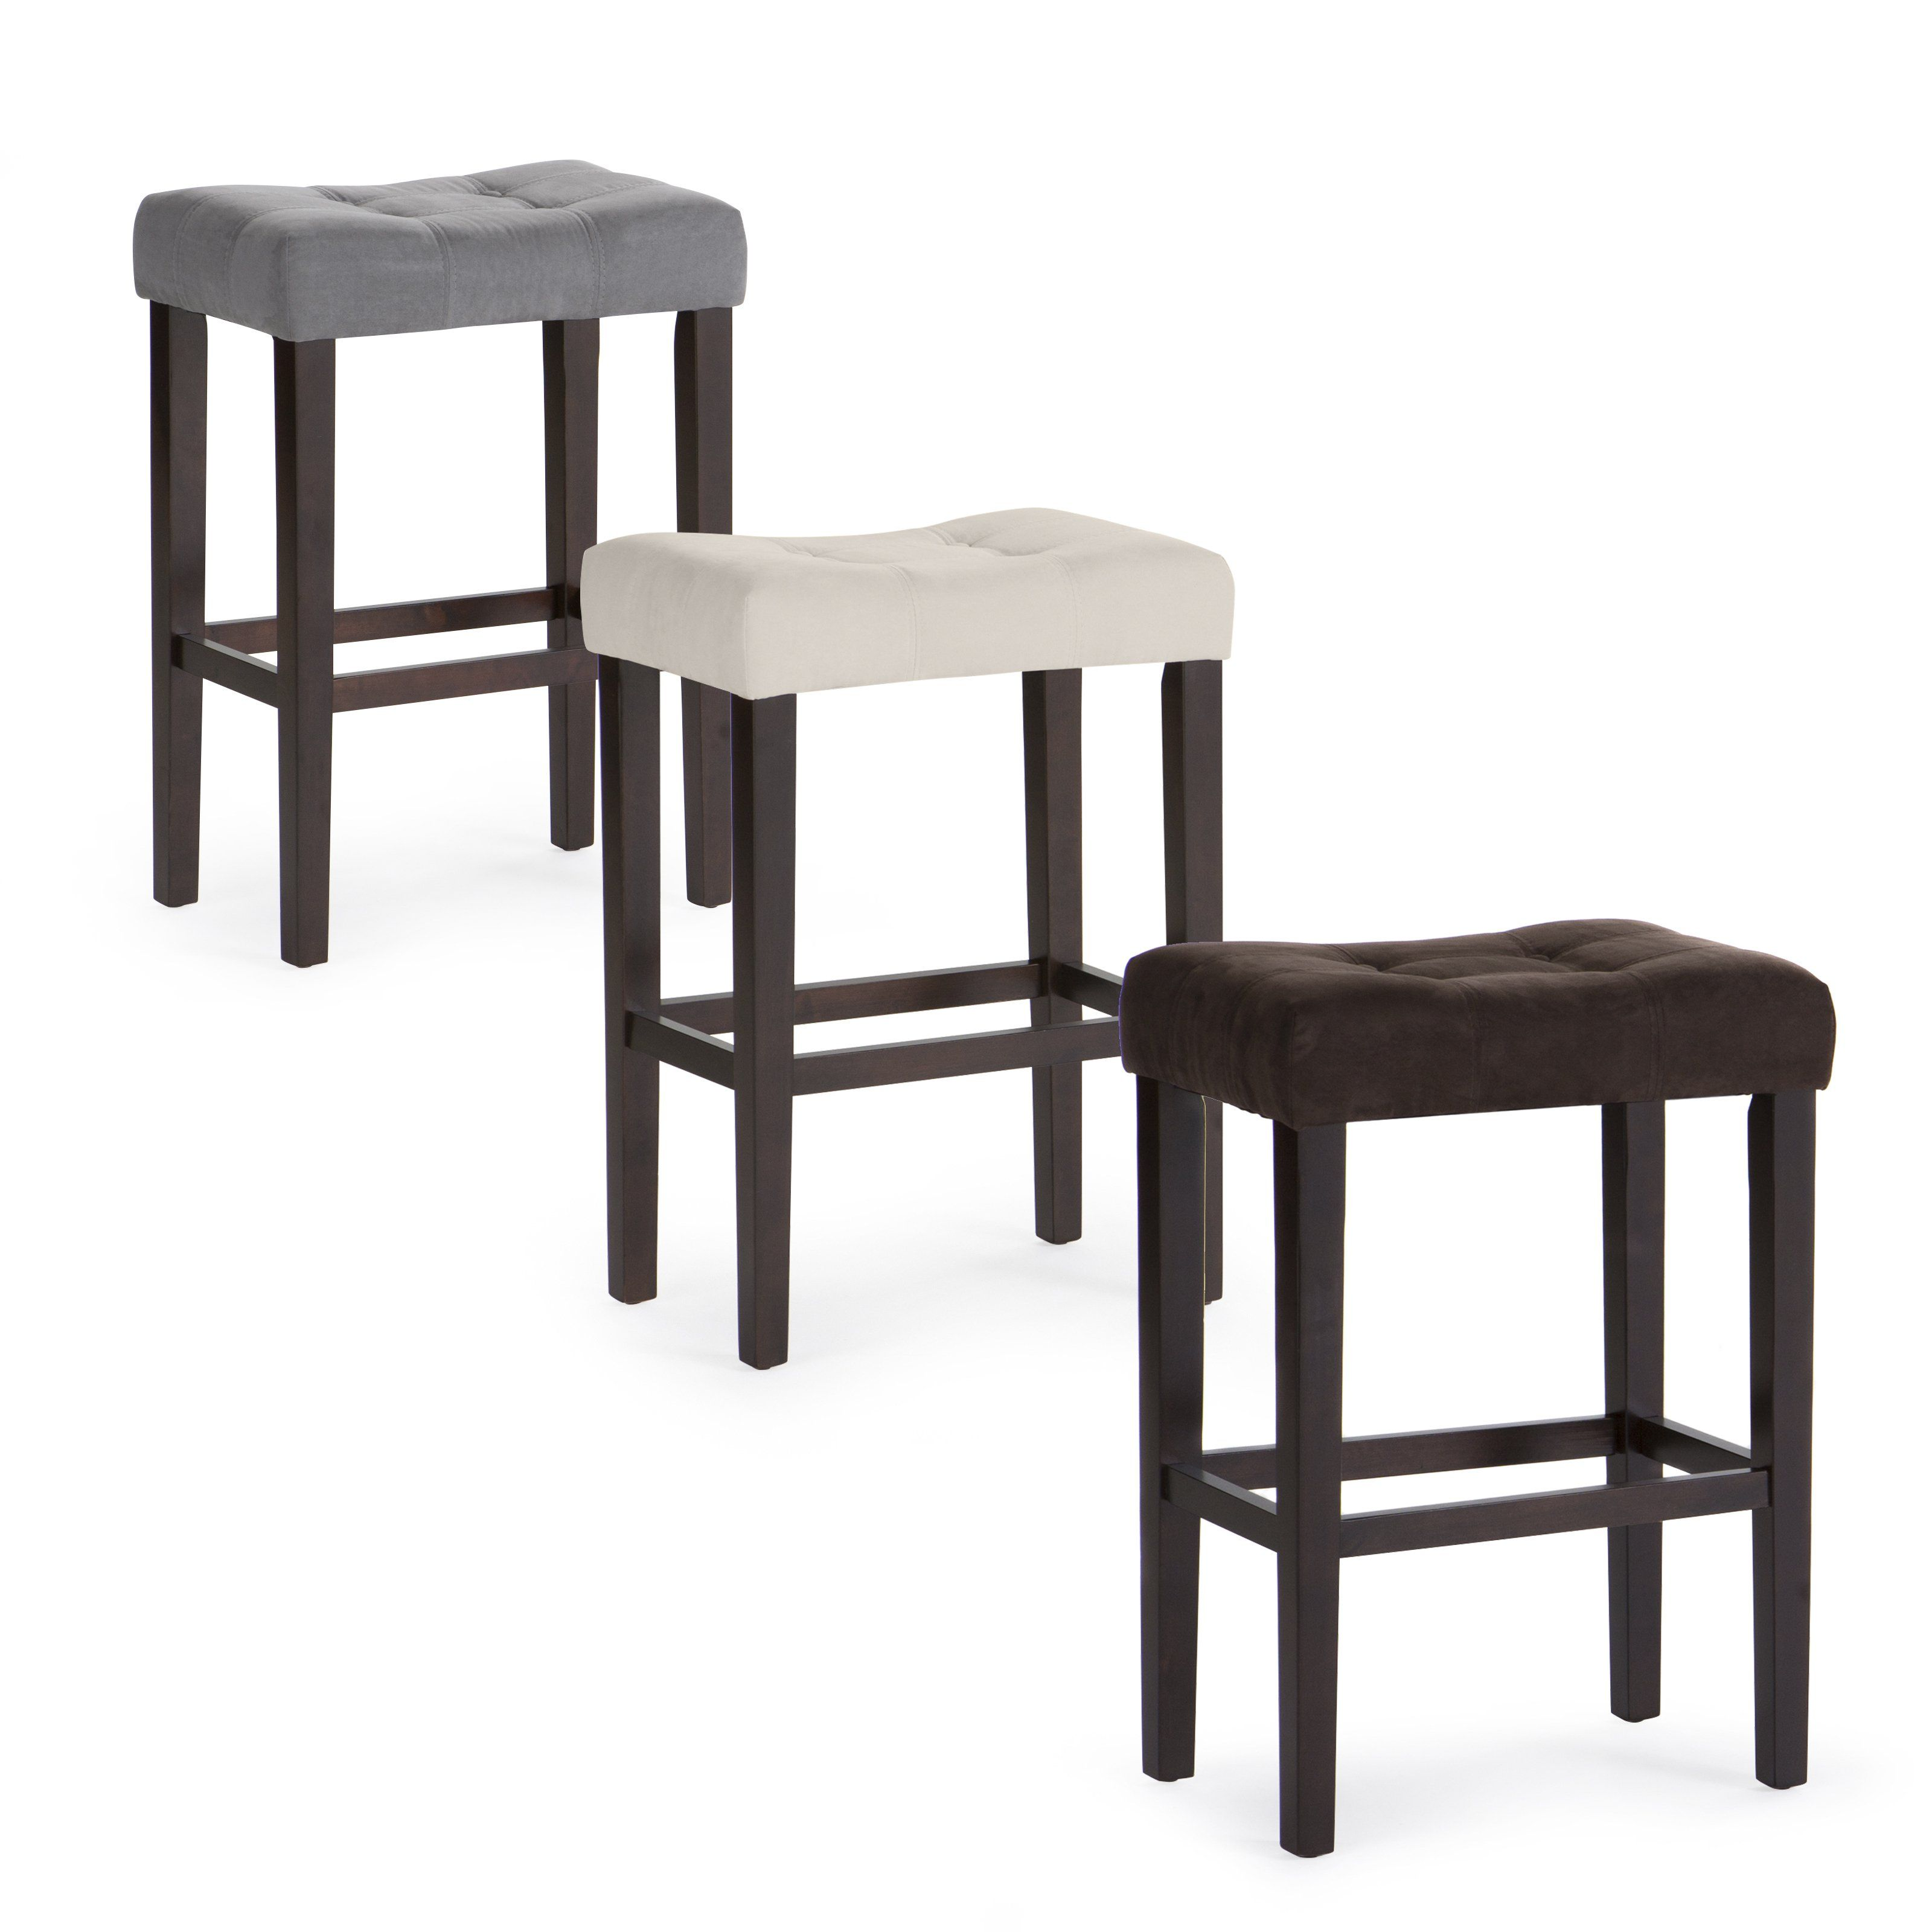 Palazzo 29 Inch Saddle Bar Stool The In Grey Is Graced With Contemporary Style And Casual Comfort Perfect For Your Home